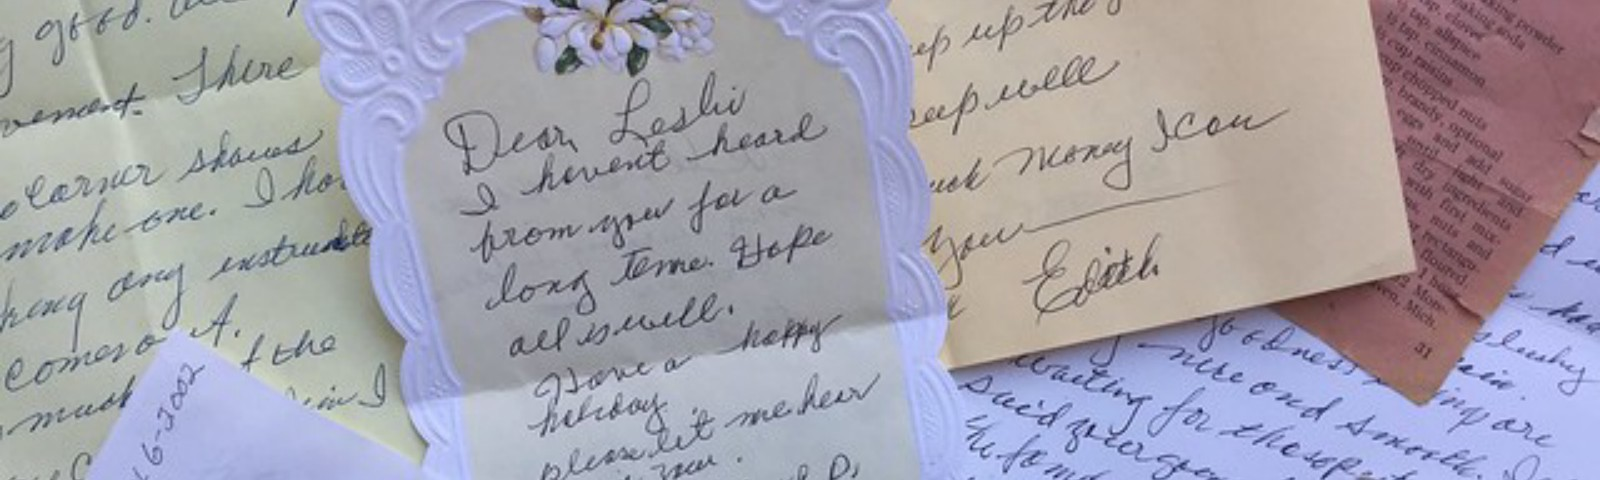 Letters from Edith Proctor to me, Leslie Stahlhut